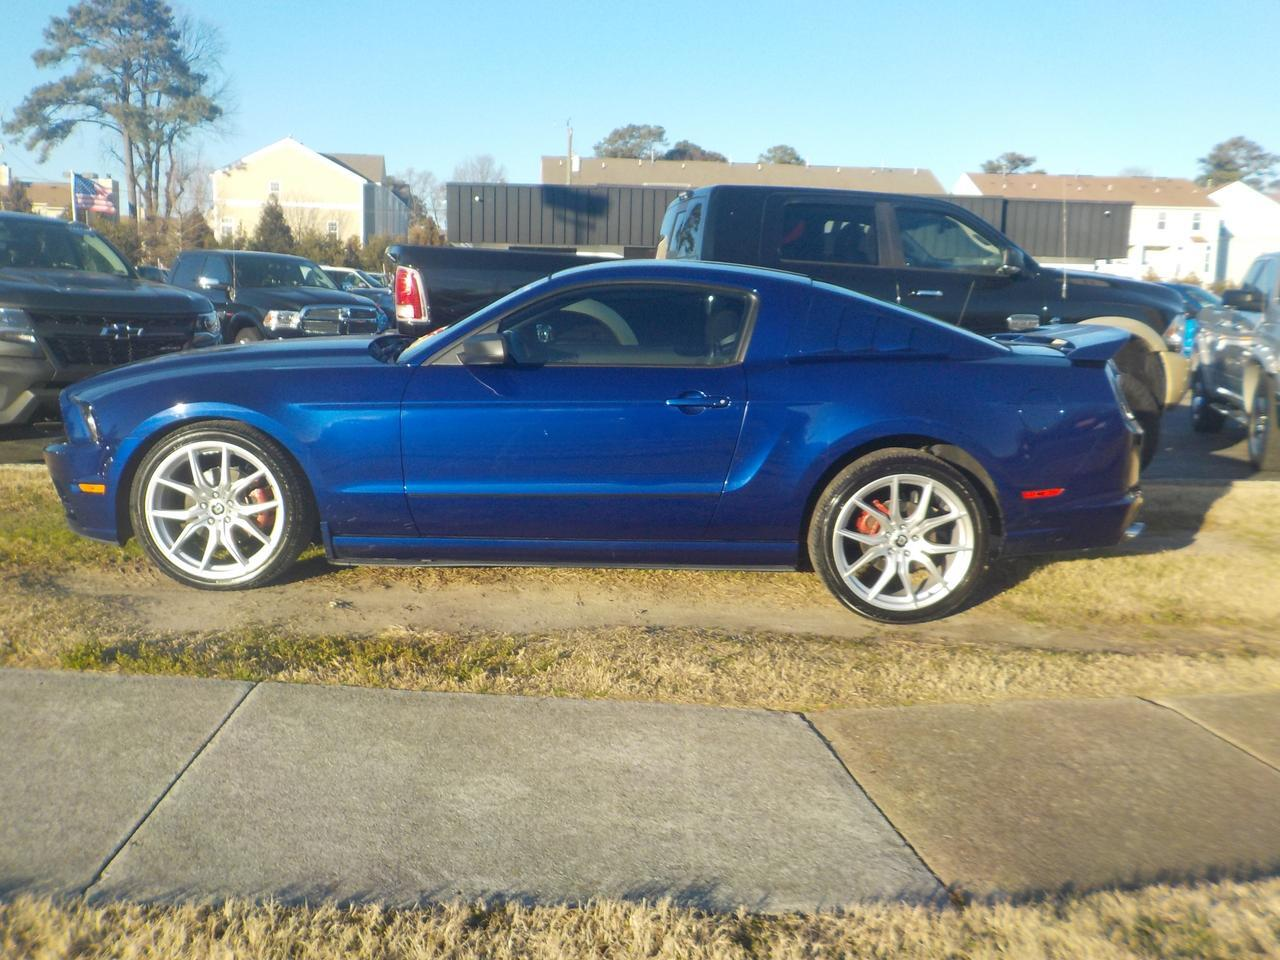 2014 FORD MUSTANG 2 DOOR COUPE, CUSTOM DRAG RIMS, BLUETOOTH WIRELESS, SYNC, VERY CLEAN, WELL MAINTAINED! Virginia Beach VA